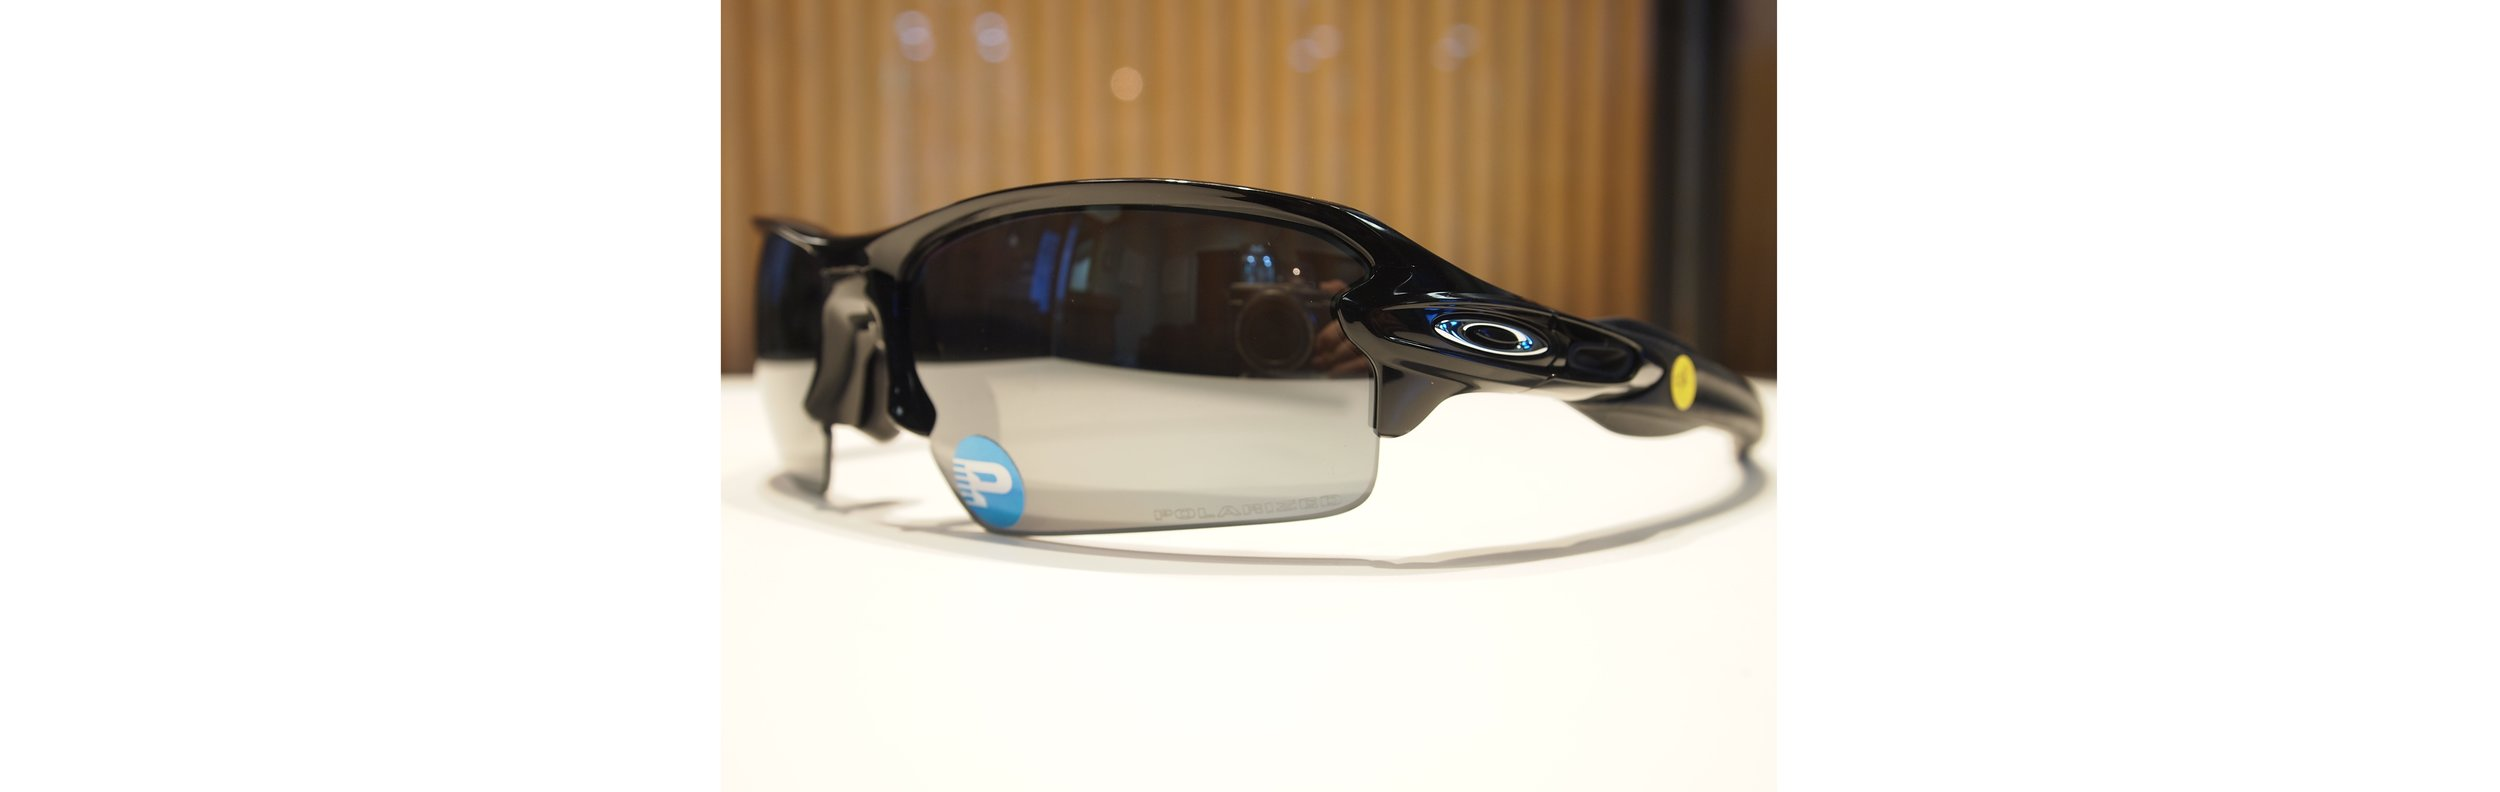 OakleyS 5B - Copy.JPG